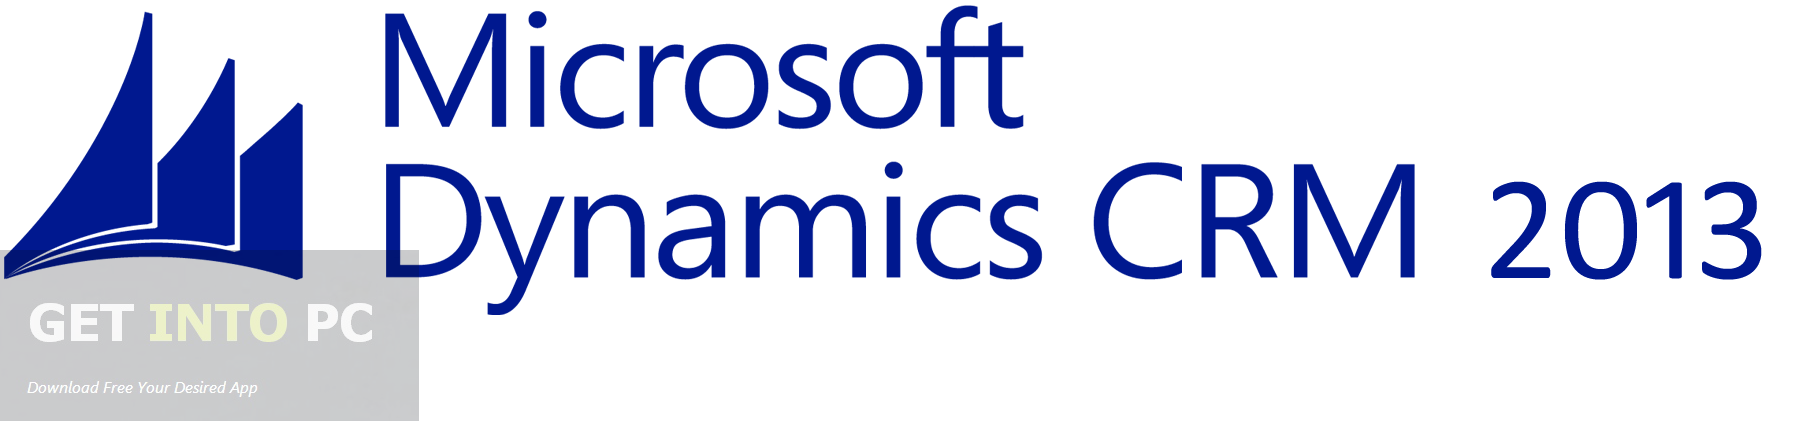 Microsoft Dynamics CRM Server 2013 Direct Link Download